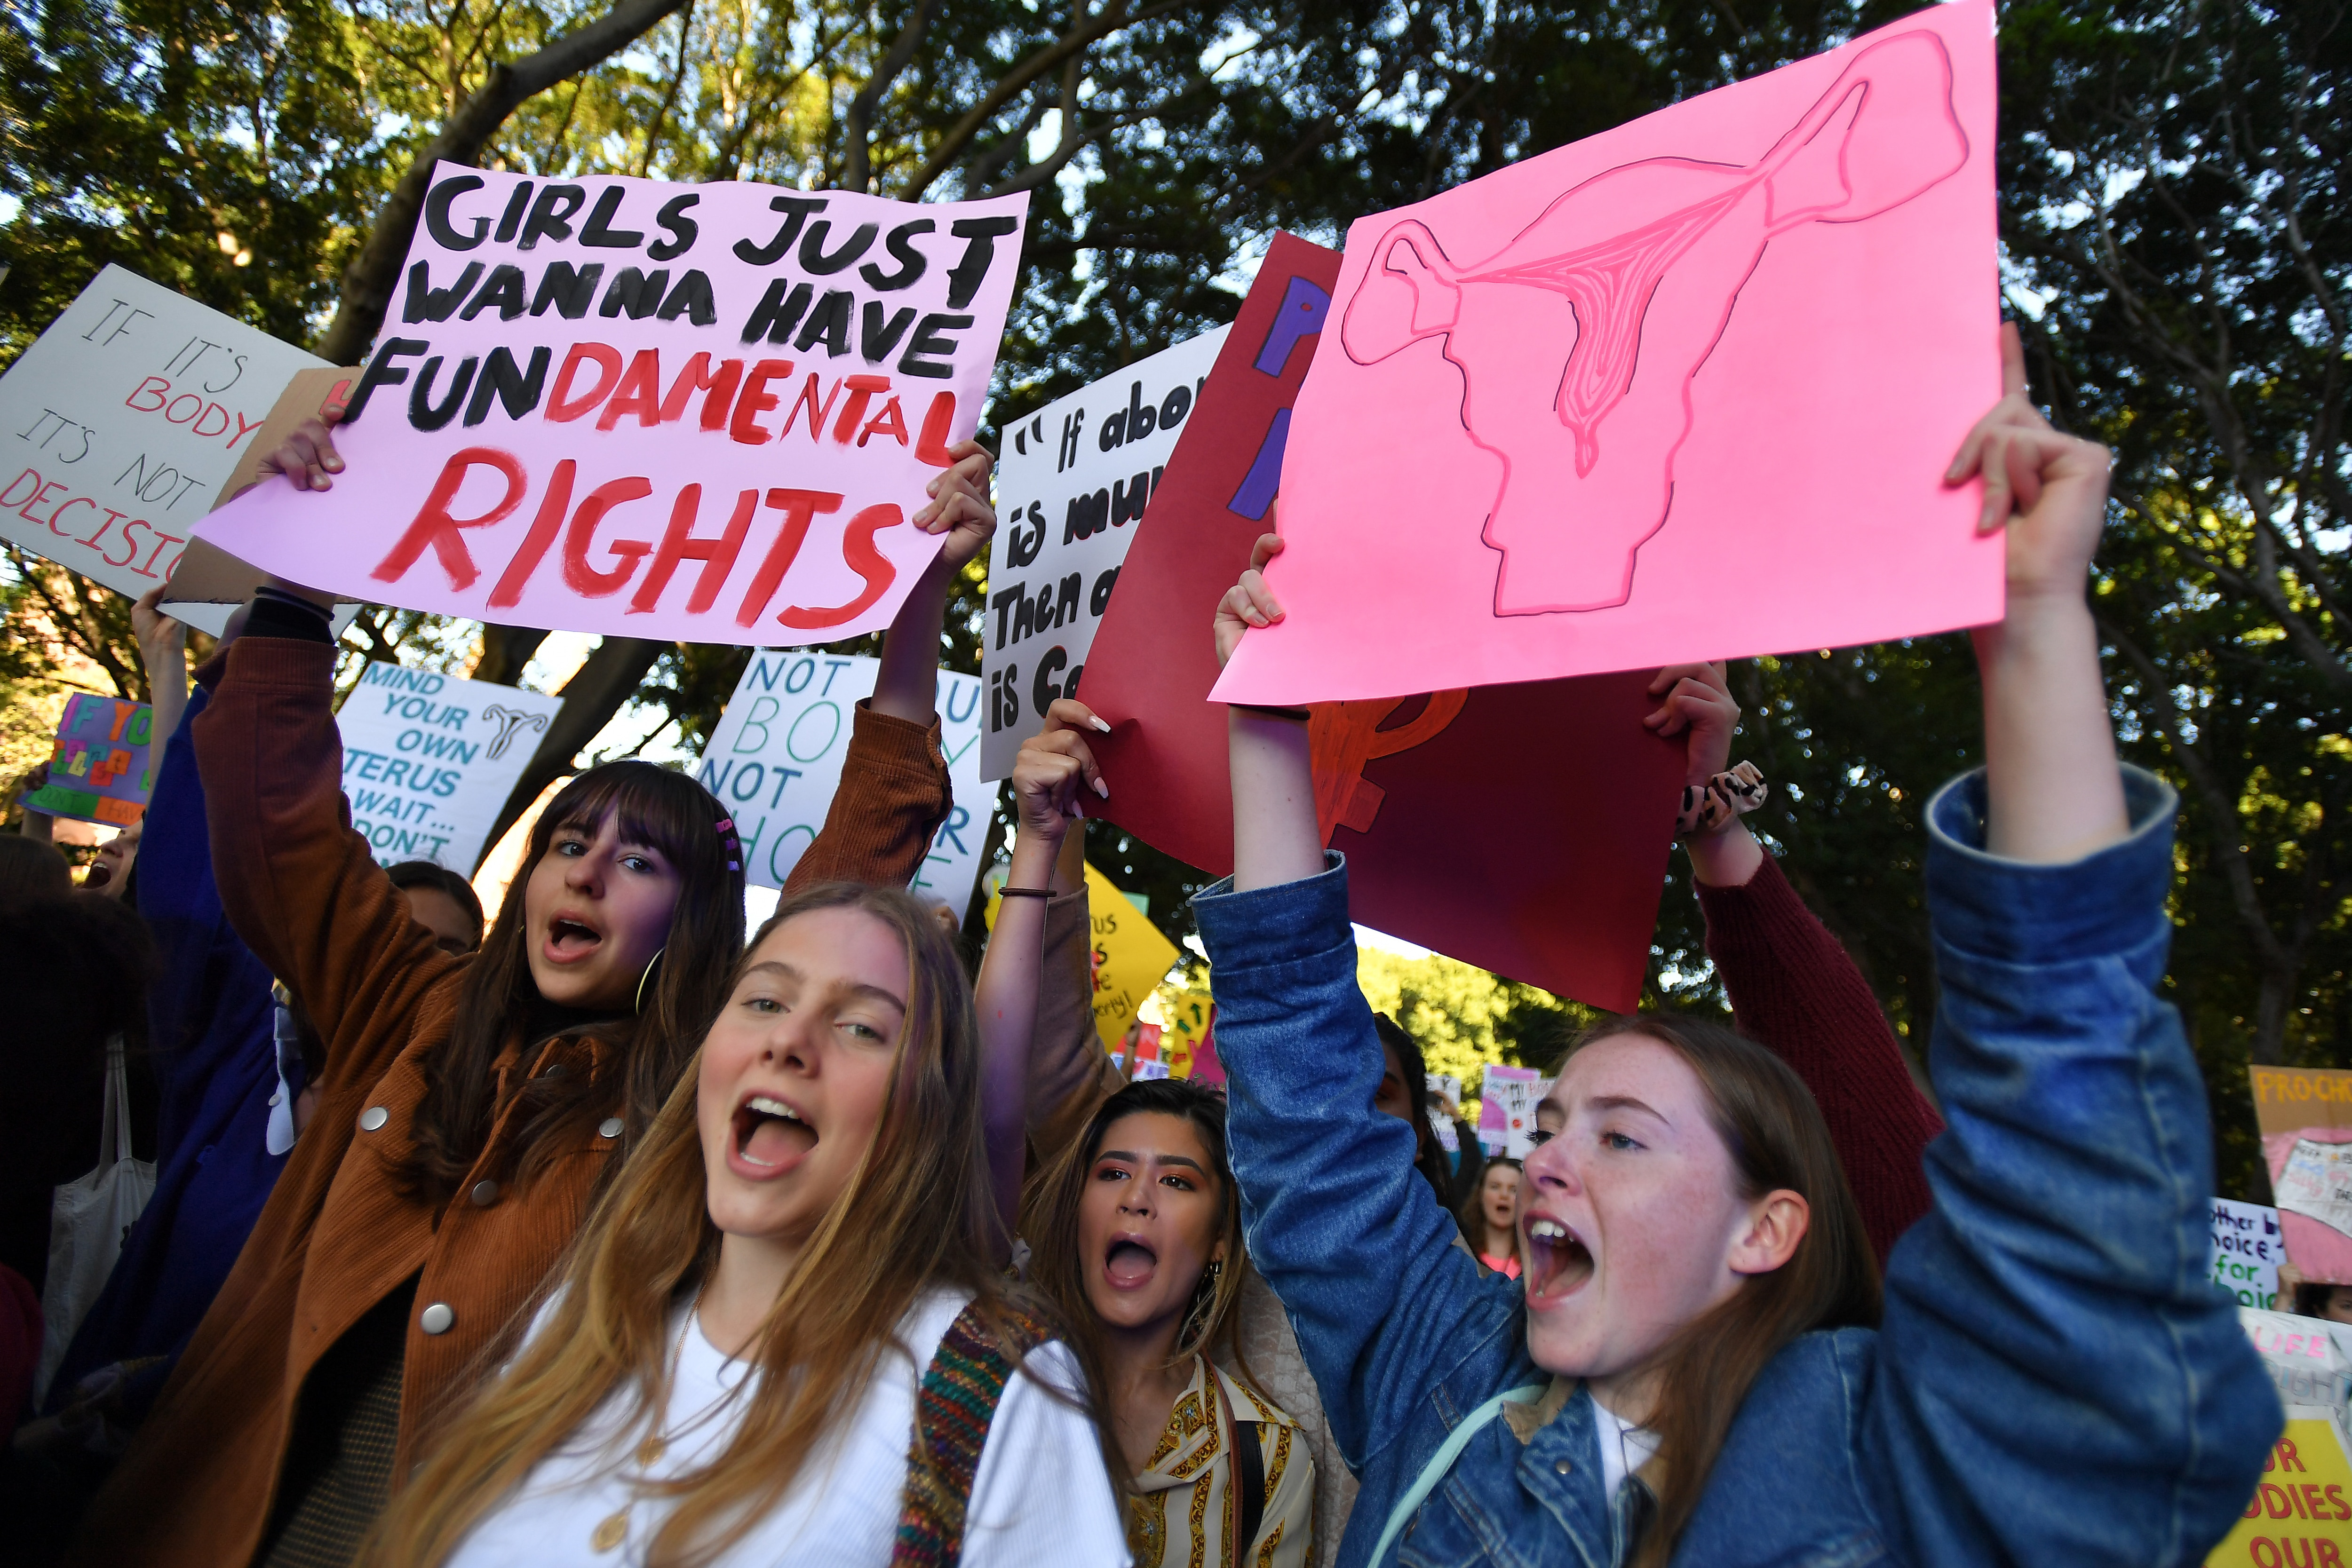 NSW could be set to change its abortion laws that reach back to 1900.